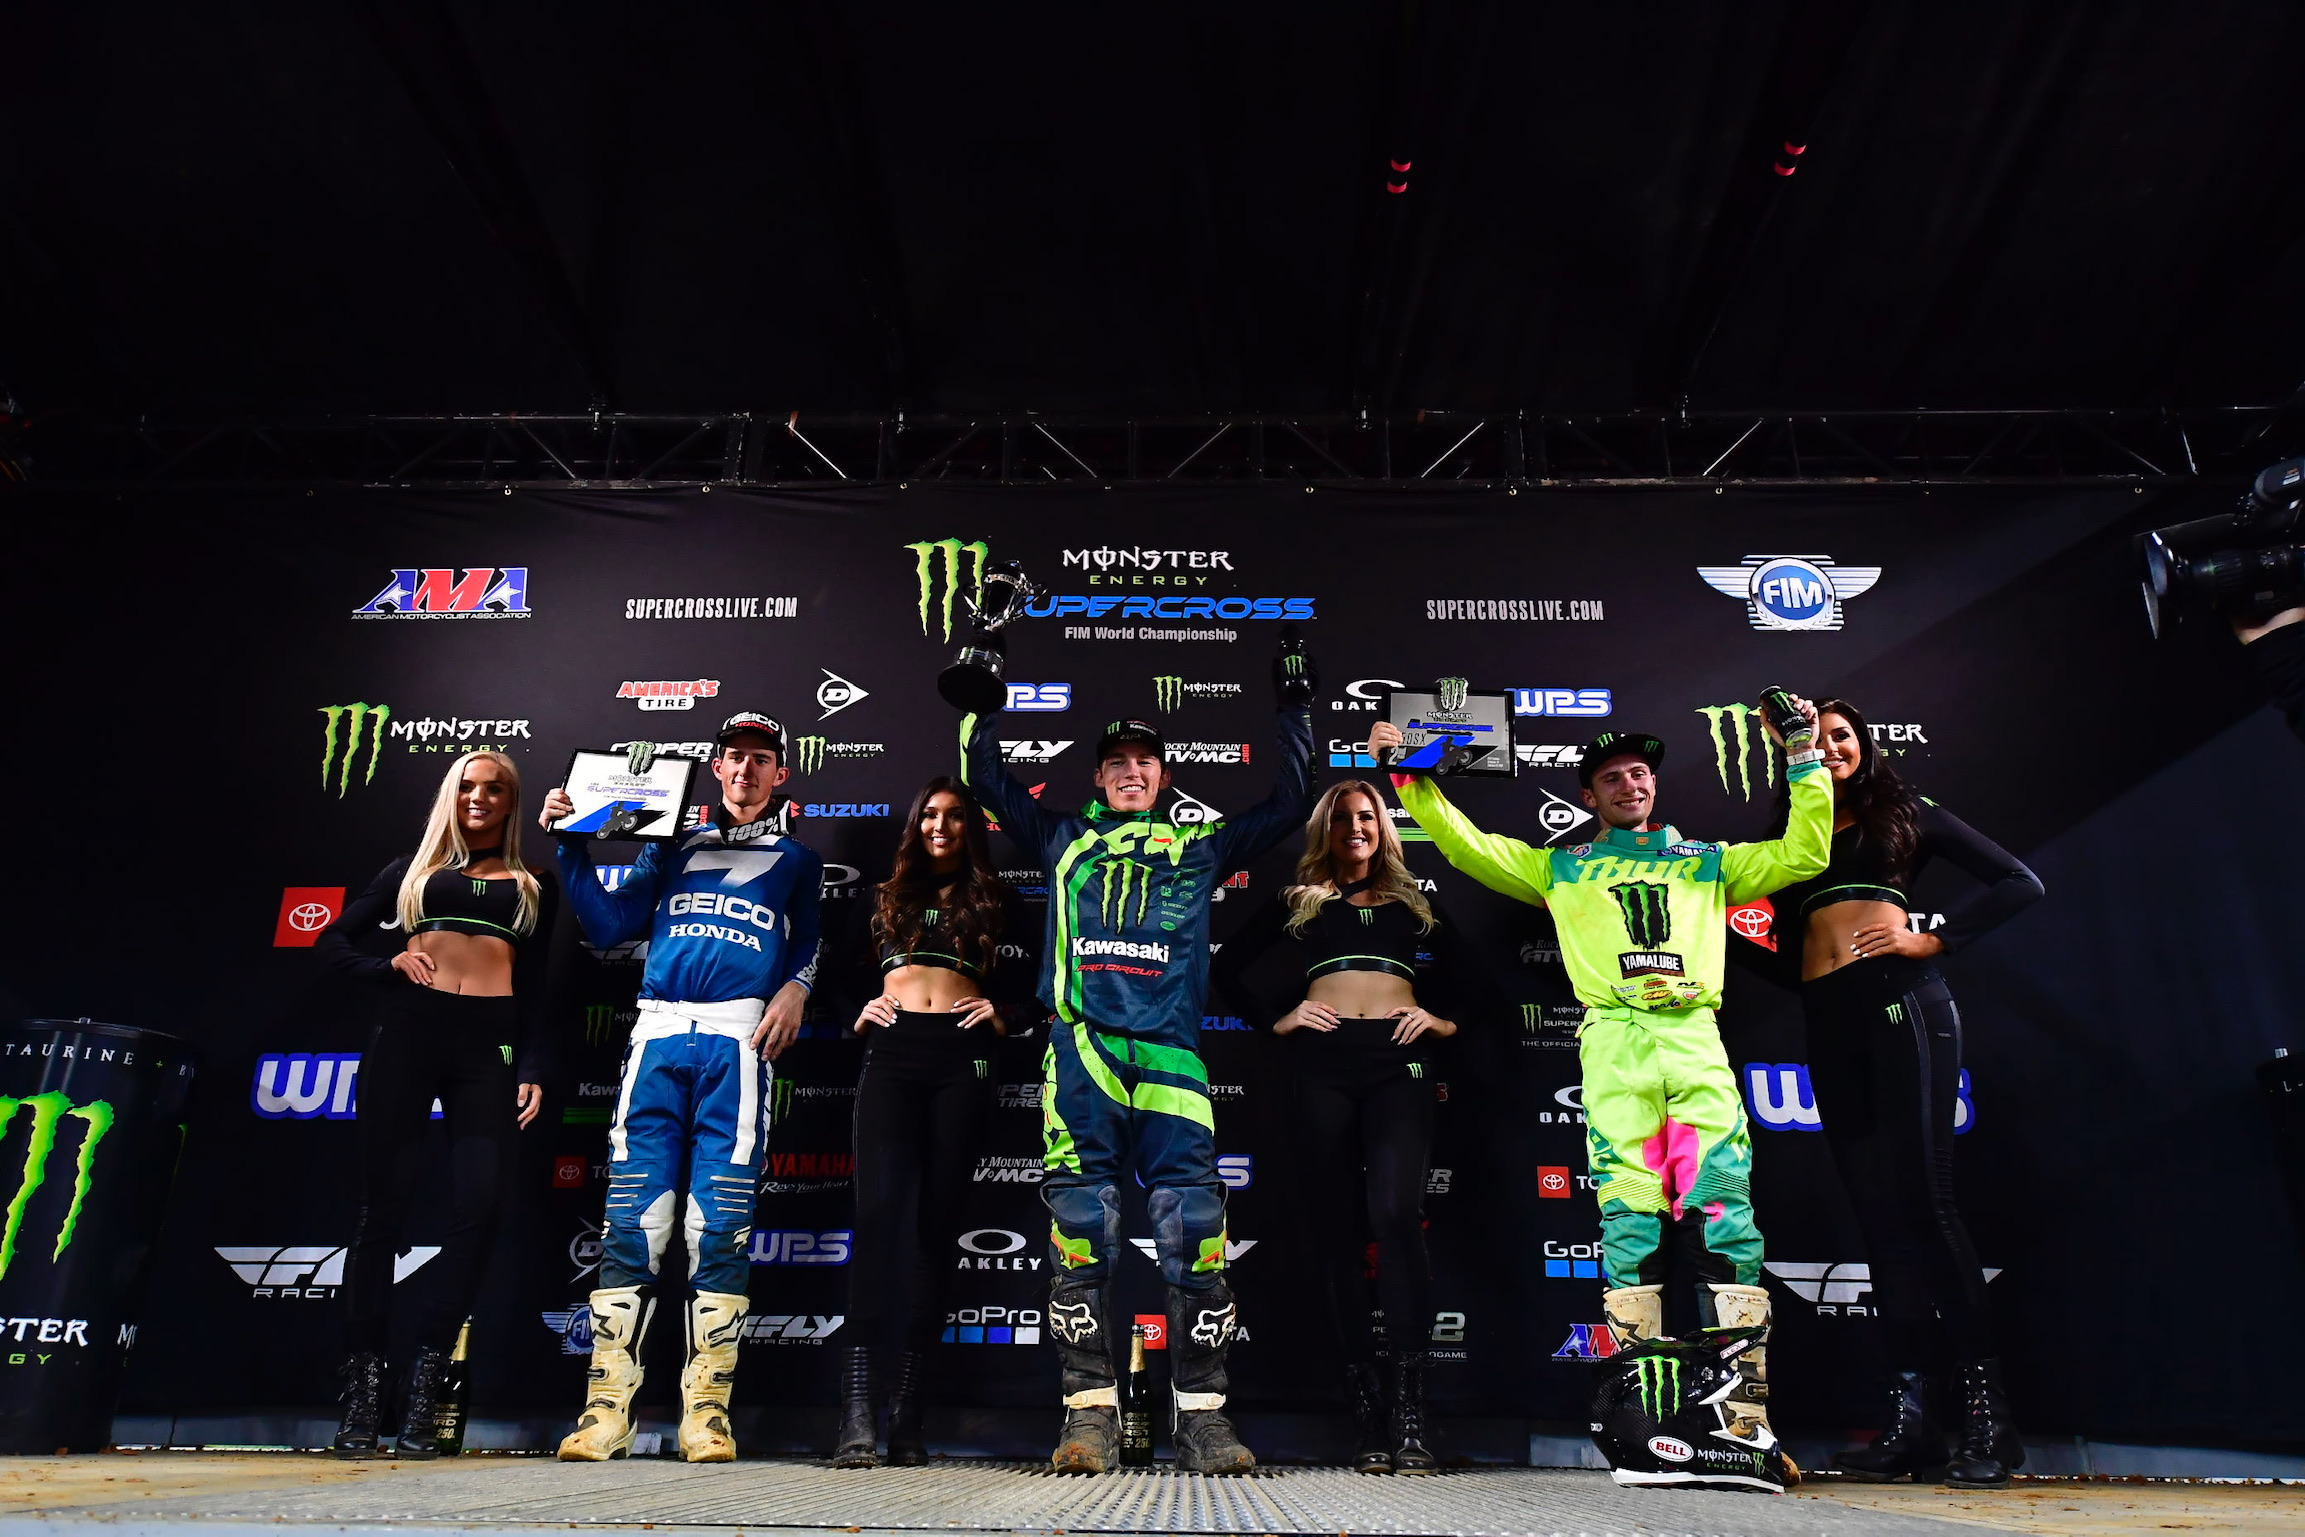 2019 Arlington Texas Supercross Pictures